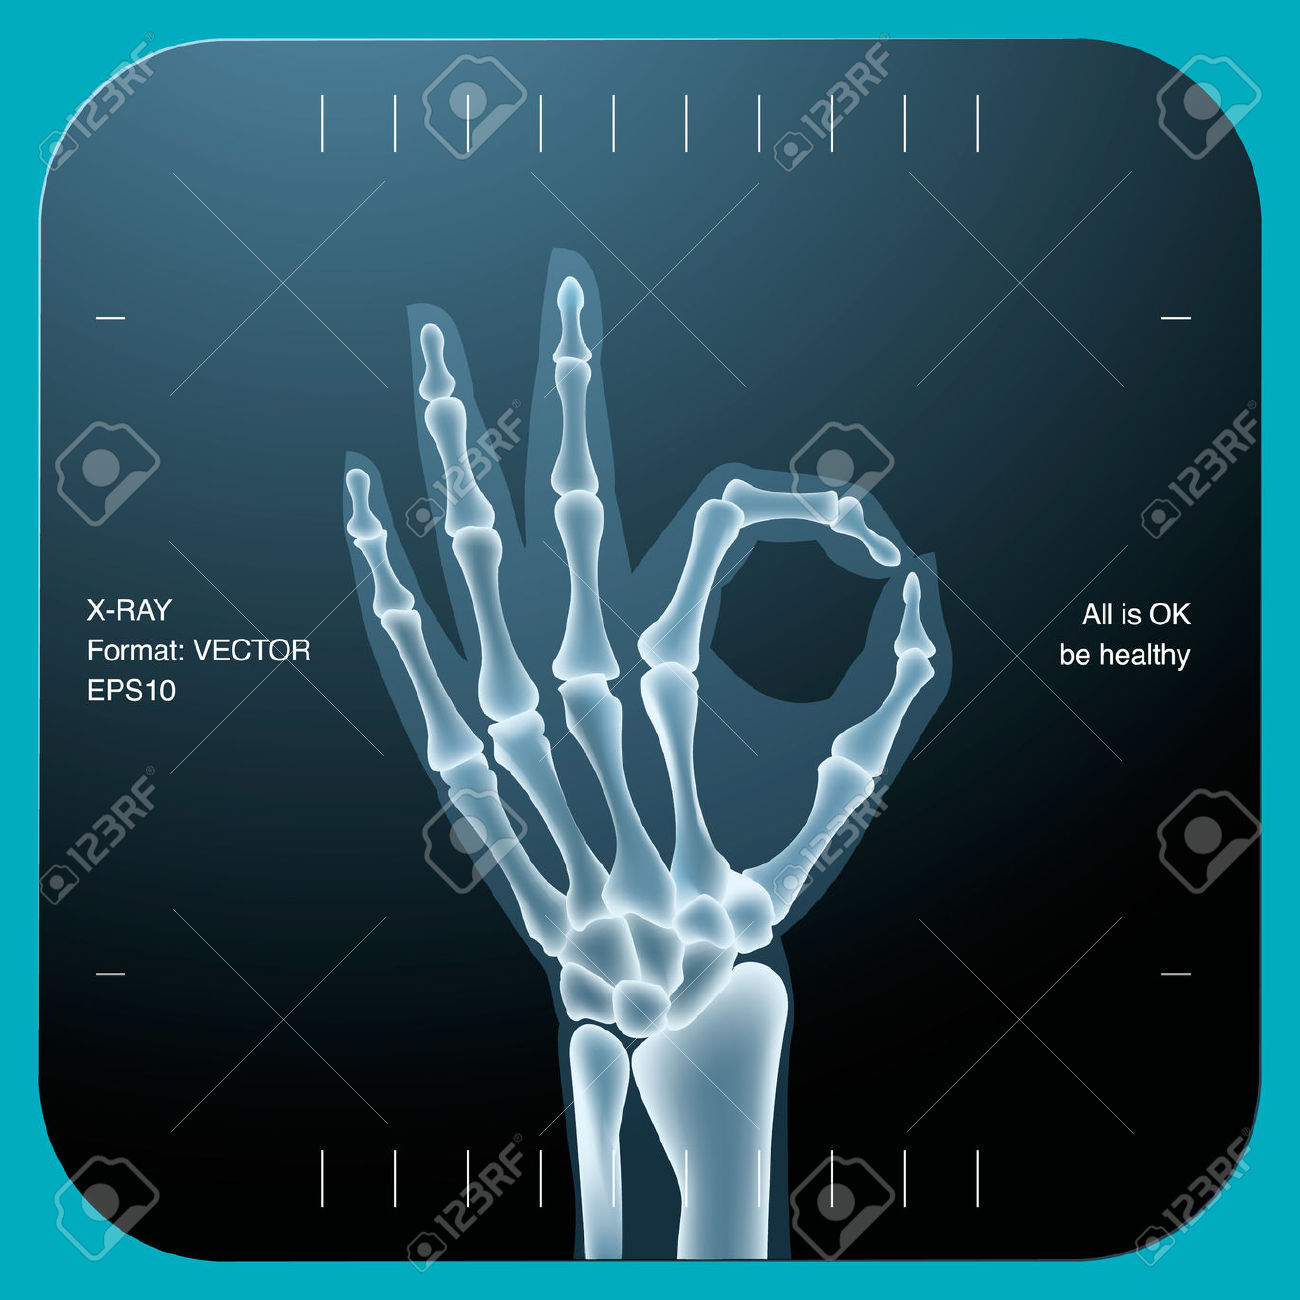 X-ray clipart #10, Download drawings